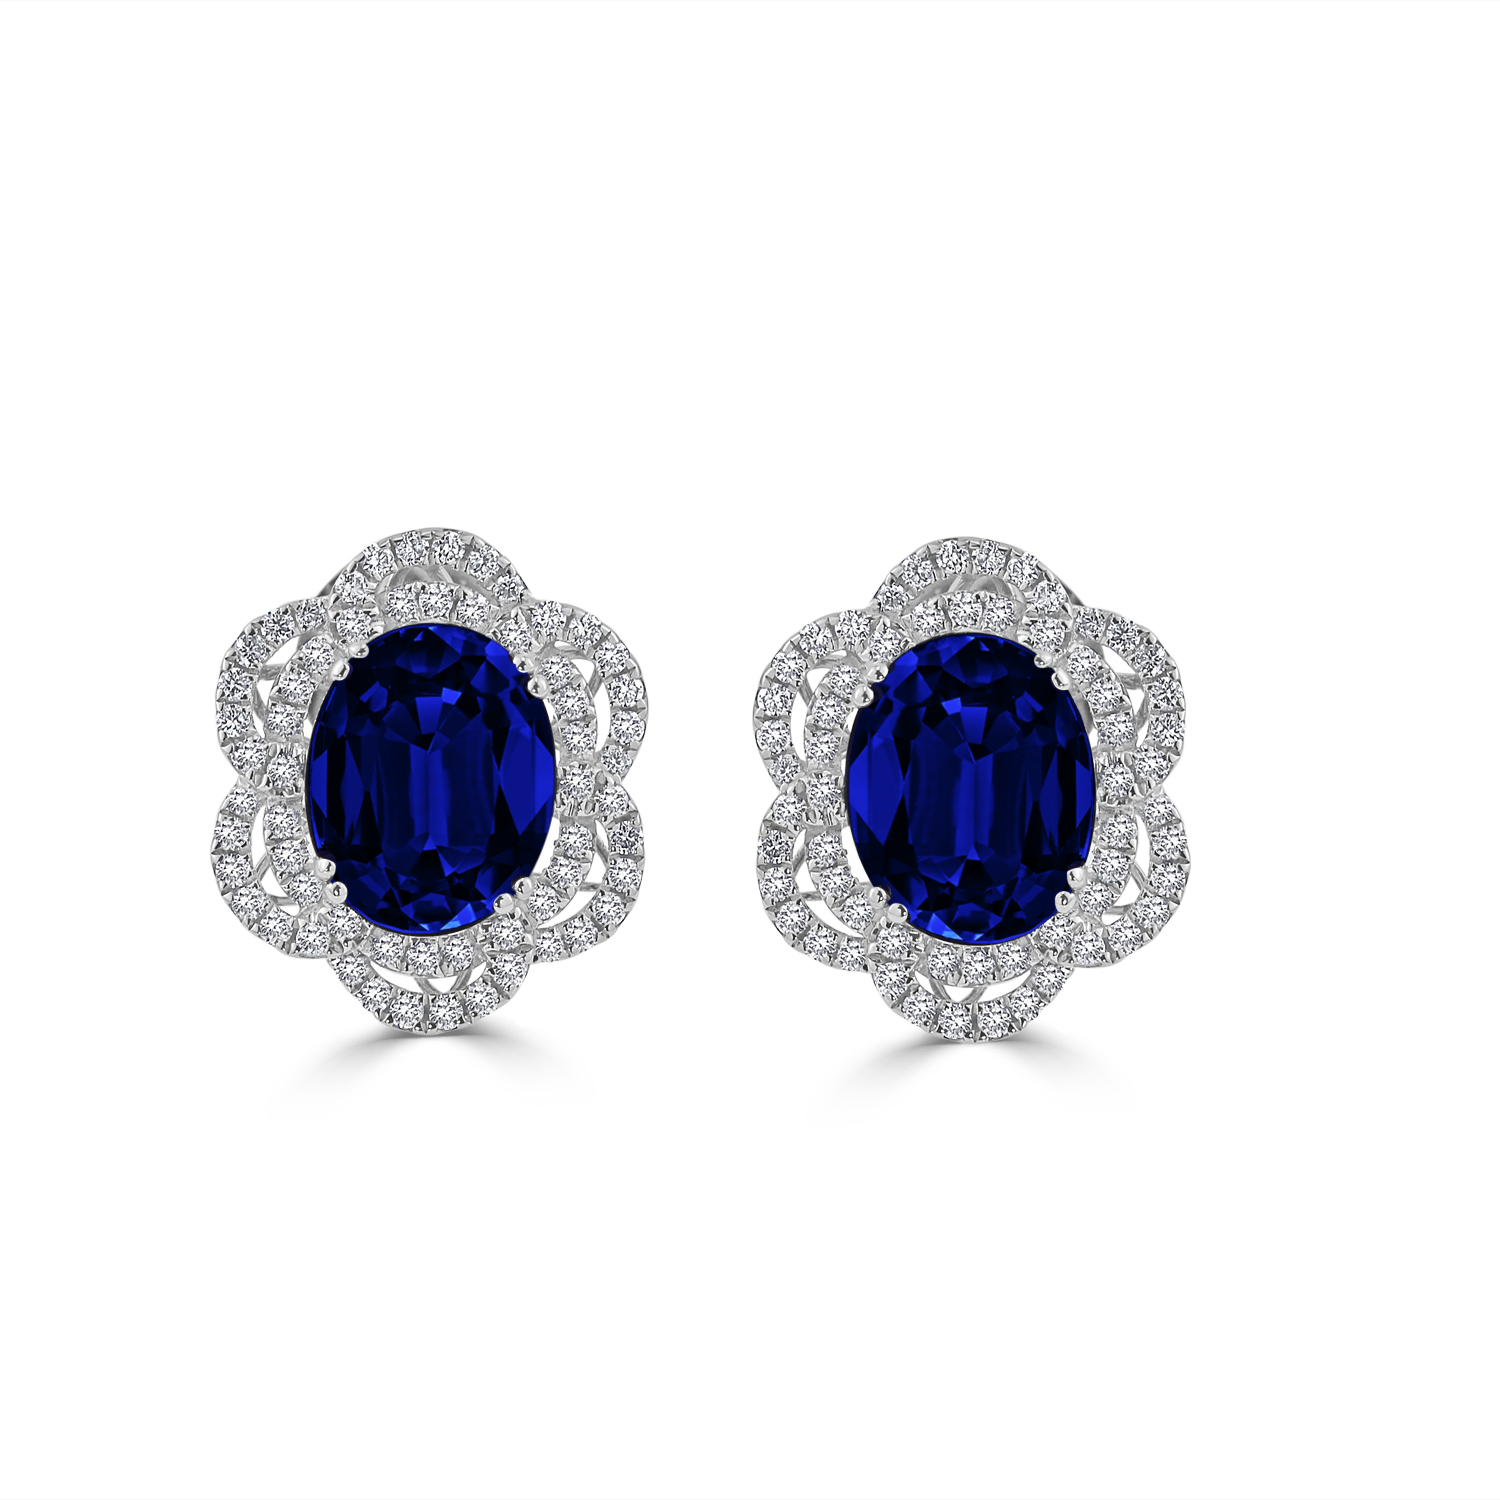 18K White Gold Halo Diamond Earrings with 6 9/10 cttw Oval Blue Sapphire and 5/8 cttw Diamonds IGI Certified